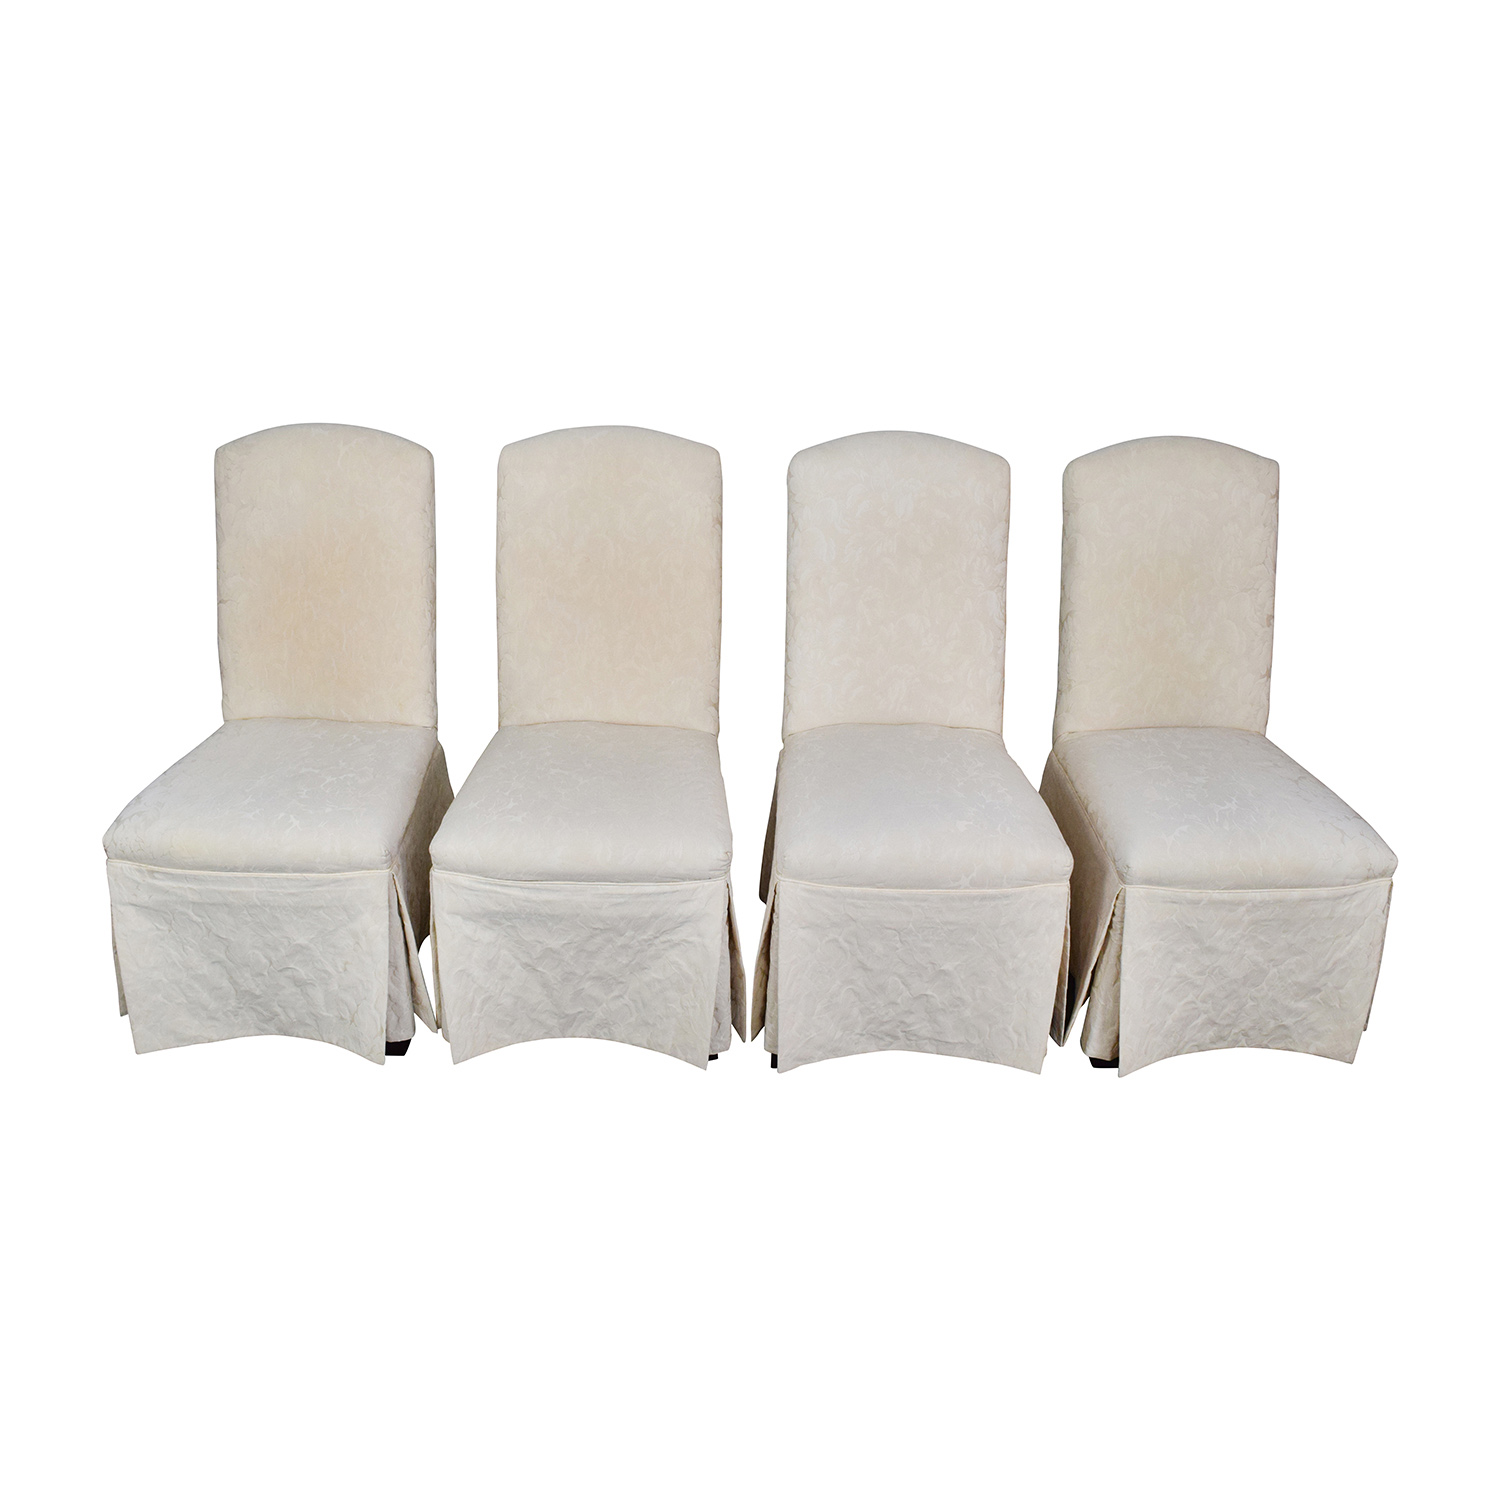 used restaurant chairs for sale adams resin adirondack dining